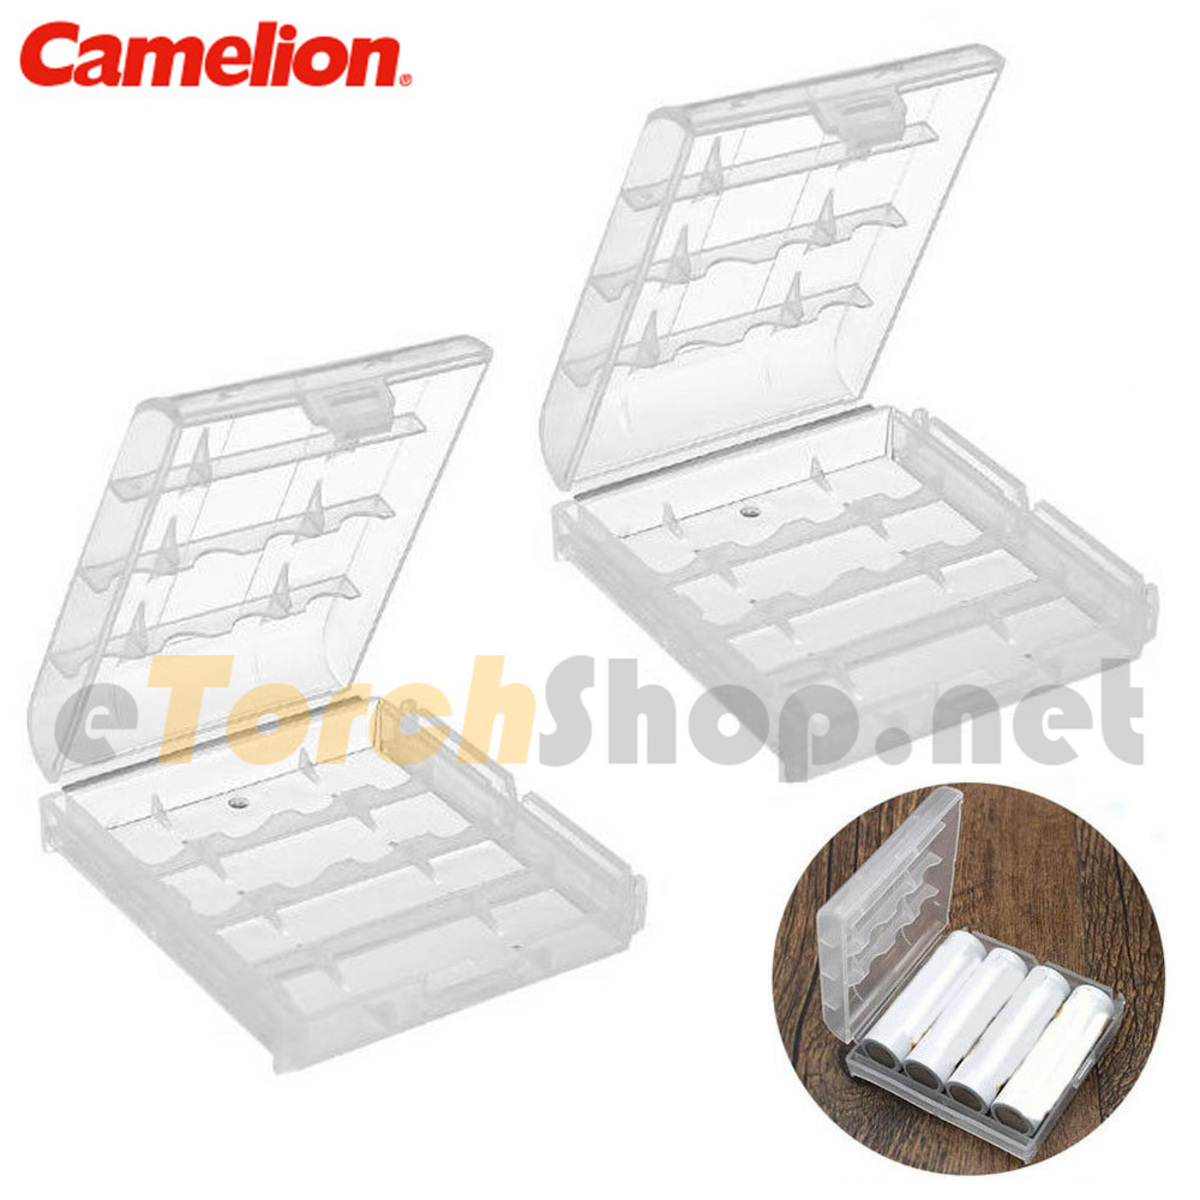 2x 4-cell AA aaa Plastic Carrying Case Holder